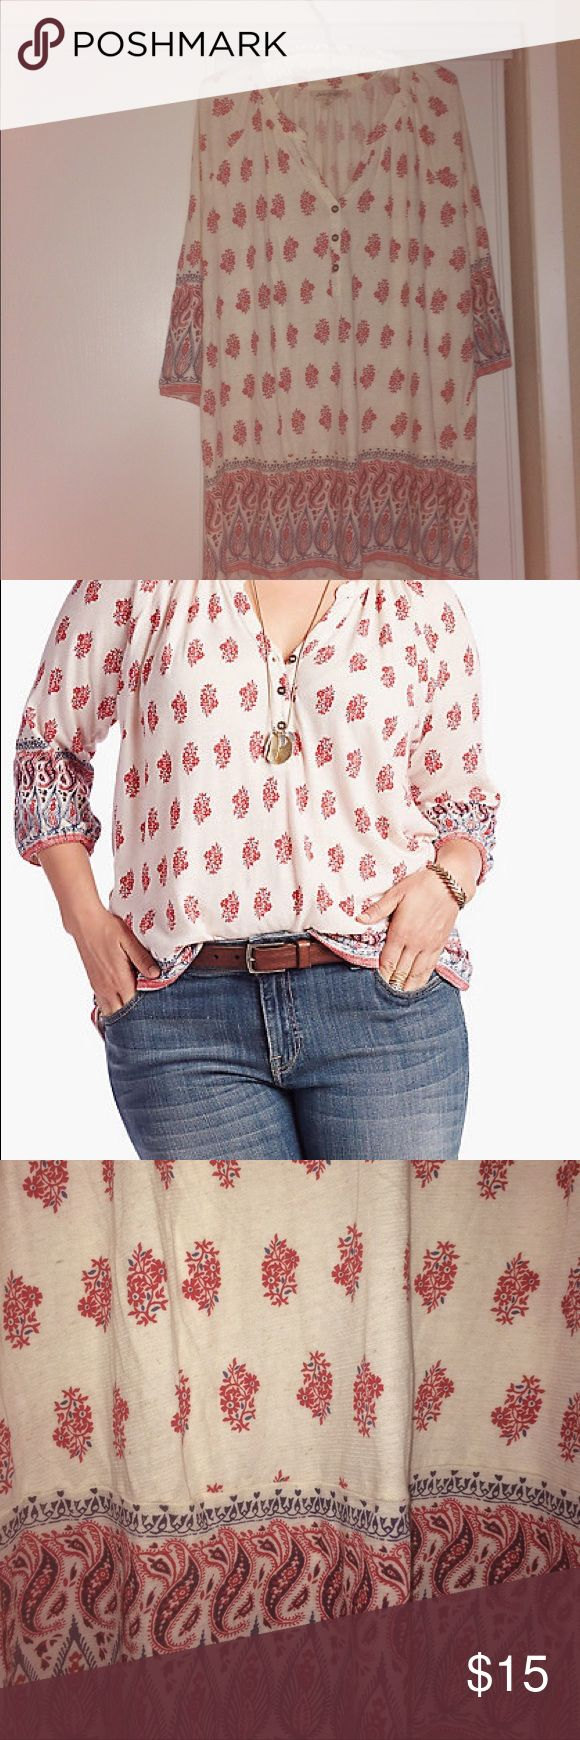 Lucky Brand Red Woodblock Border Top New with tag removed (tag is available). 3/4 length sleeves. Super cute and the fabric very soft. Lucky Brand Tops Blouses